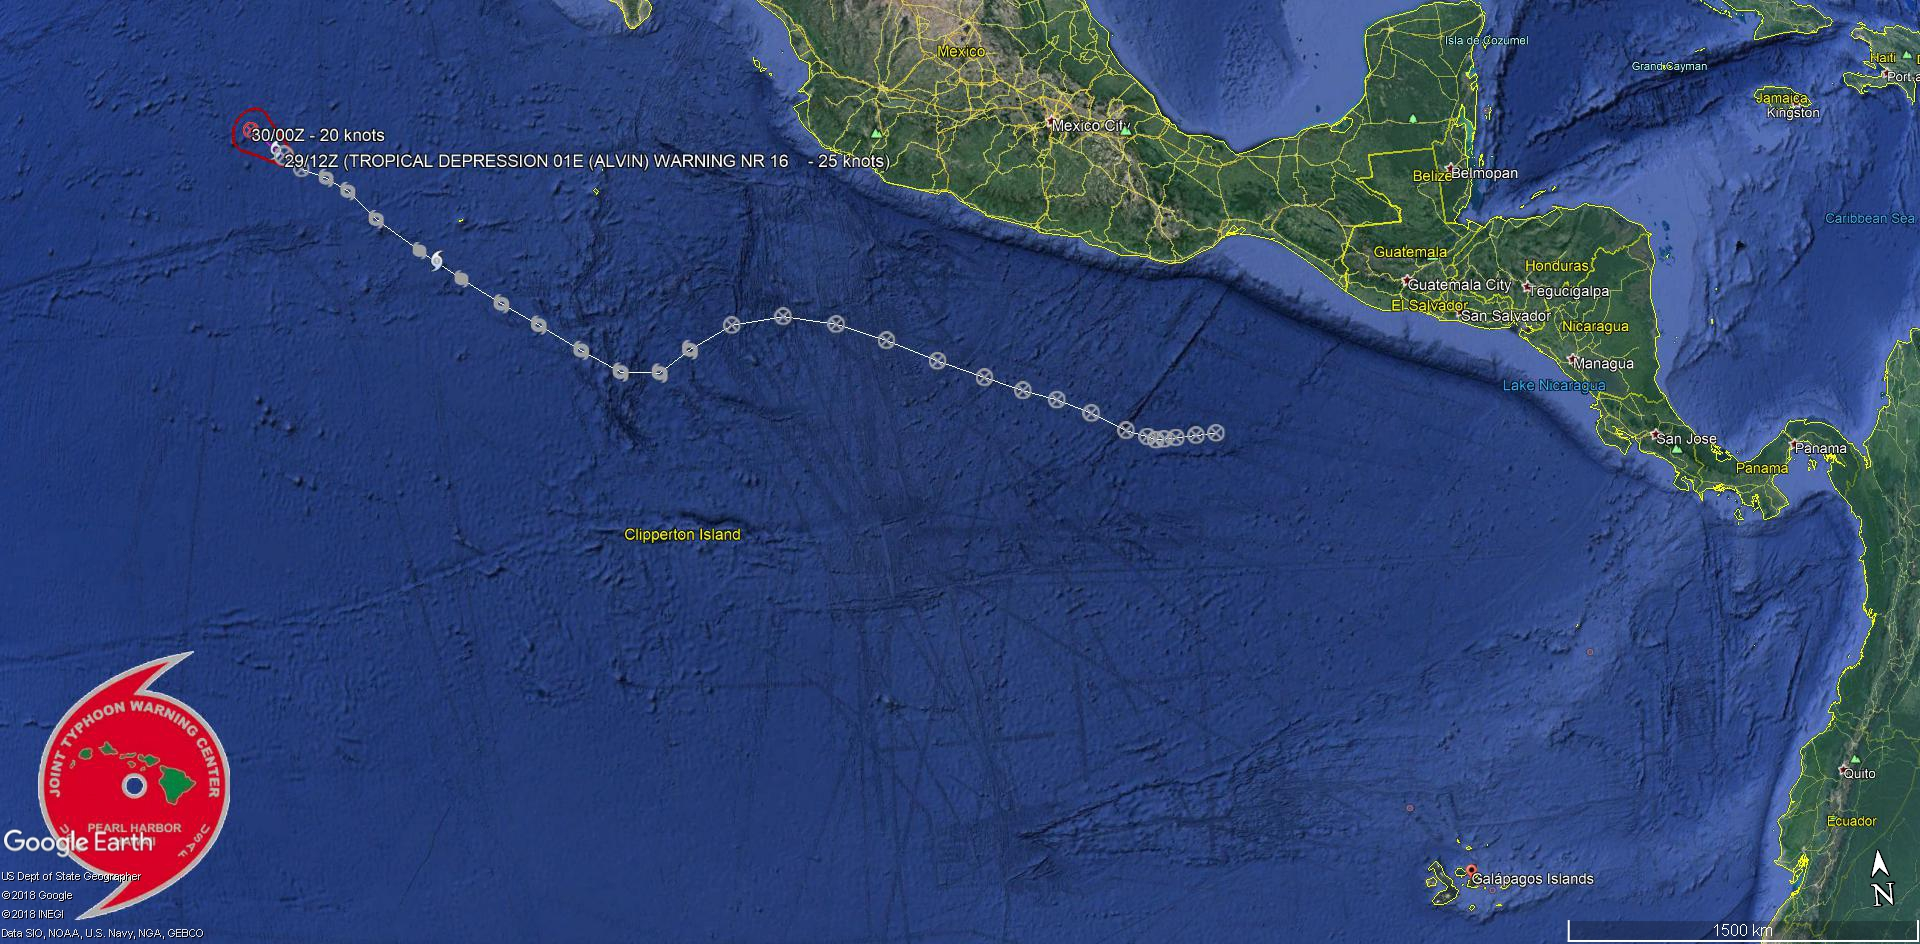 ALVIN(01E): Final Warning, maximum intensity reached was 65knots, category 1 US. JMV File included.